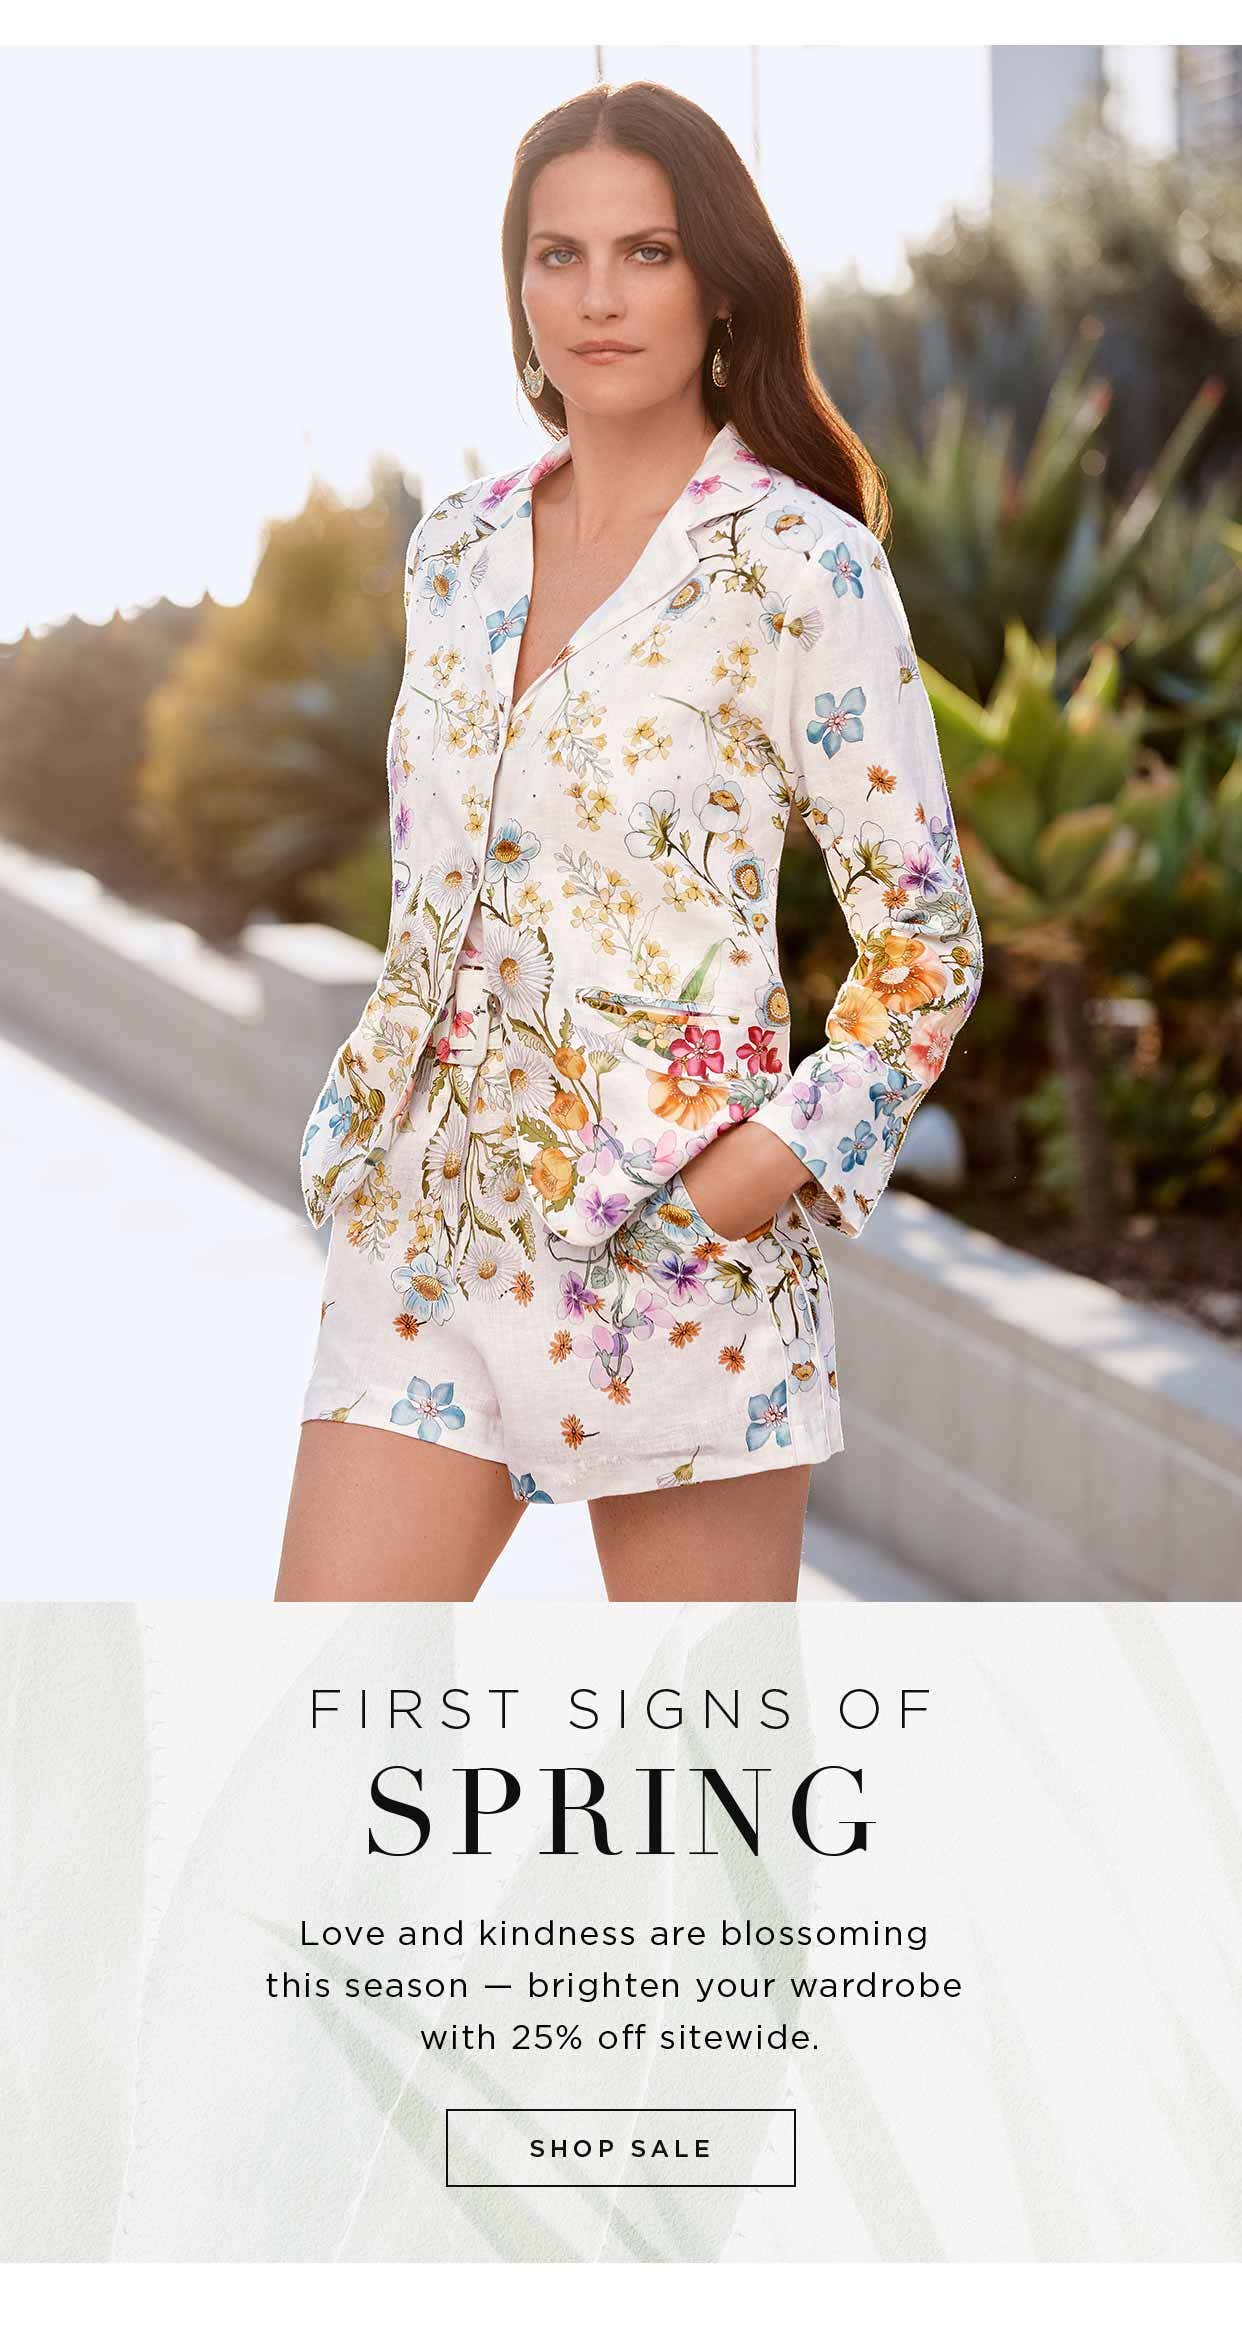 First Signs of Spring - Love and kindness are blossoming this season - brighten your wardrobe with 25% off sitewide - Shop Sale